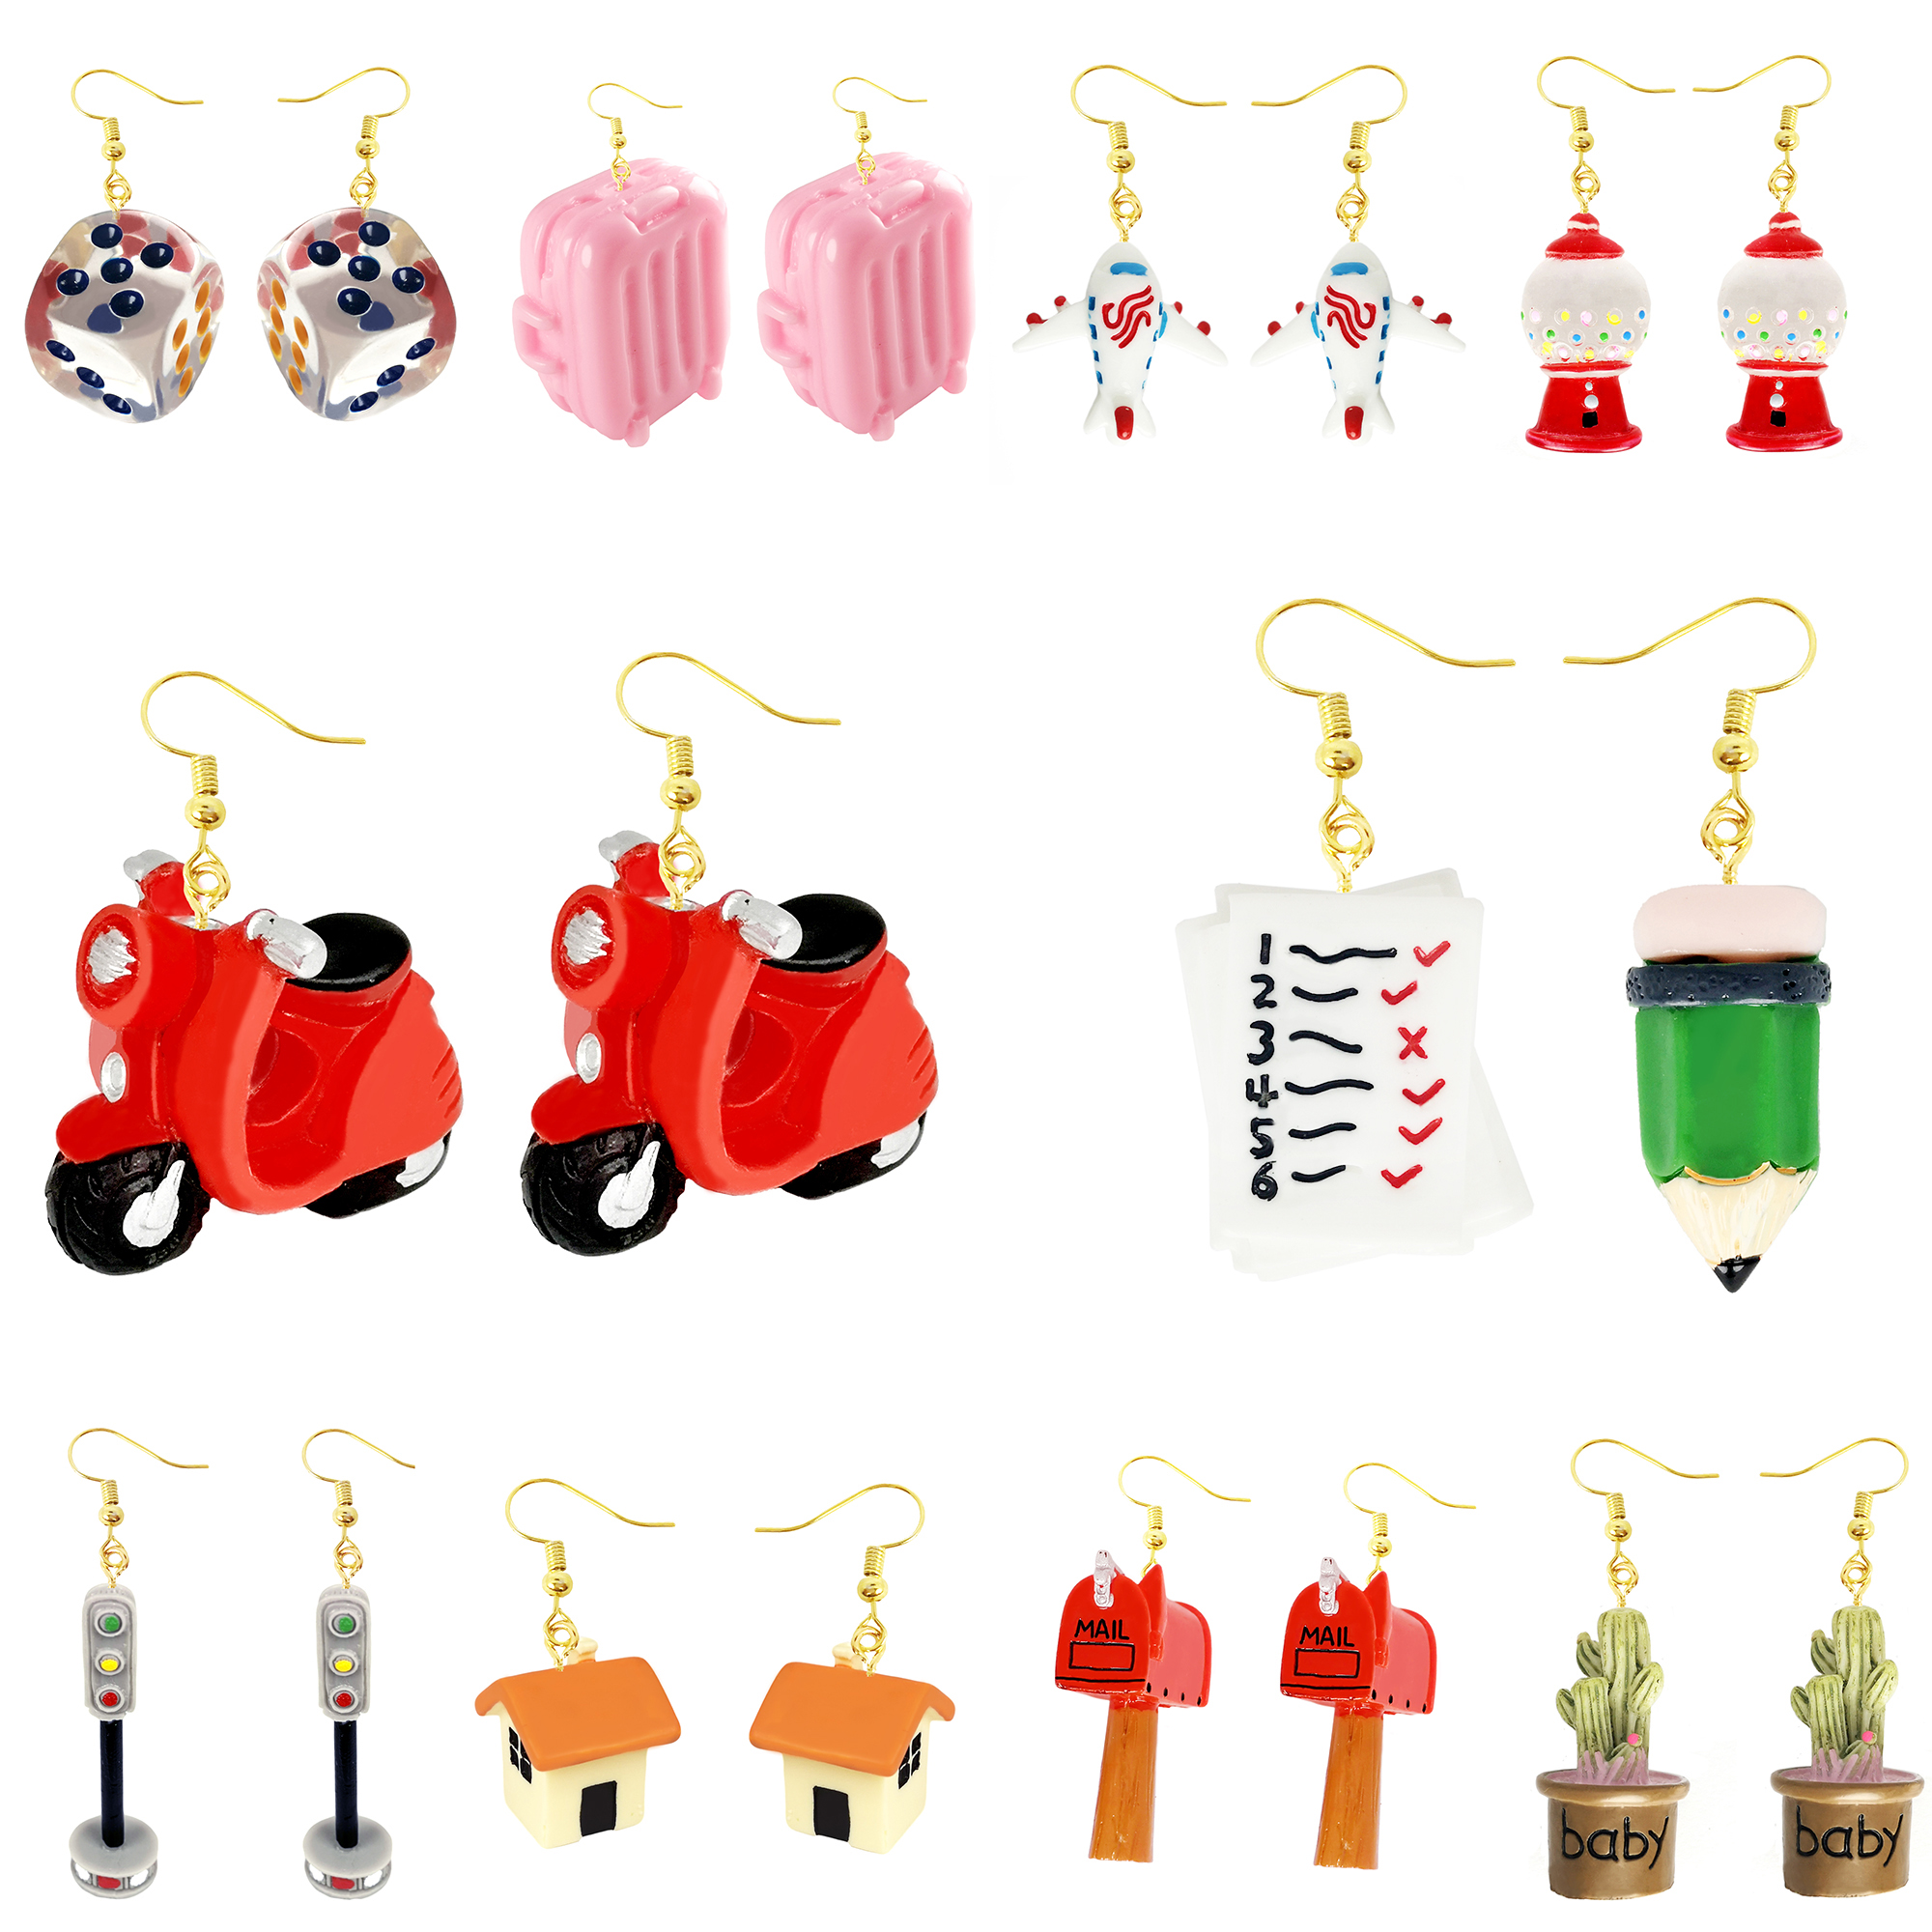 Women Earring Made Cute Girls Eardrop Funny Gift Sweet Handmade Cartoons Mini Plane Traffic Lights Dice Cactus